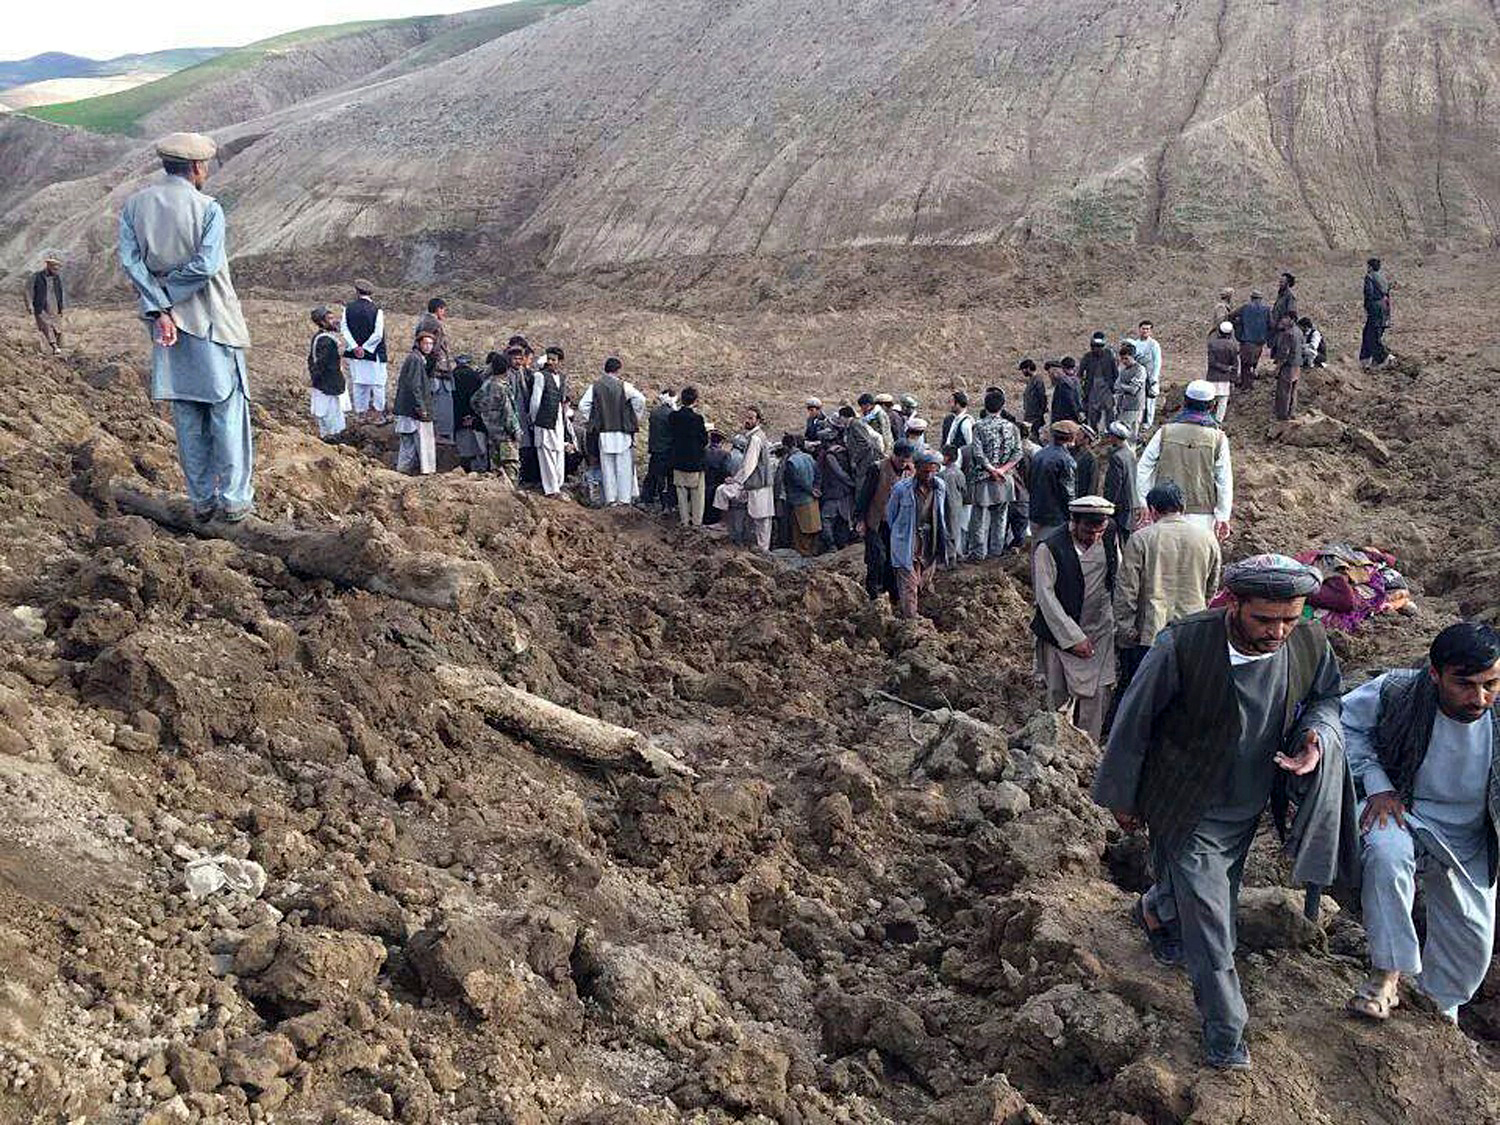 Afghan villagers gather at the site of a landslide at the Argo district in Badakhshan province, on Friday. More than 2,000 people are trapped after a landslide smashed into a village in a remote mountainous area of northeastern Afghanistan, a spokesman for the local governor said, prompting a massive search and rescue effort. Photo: Reuters